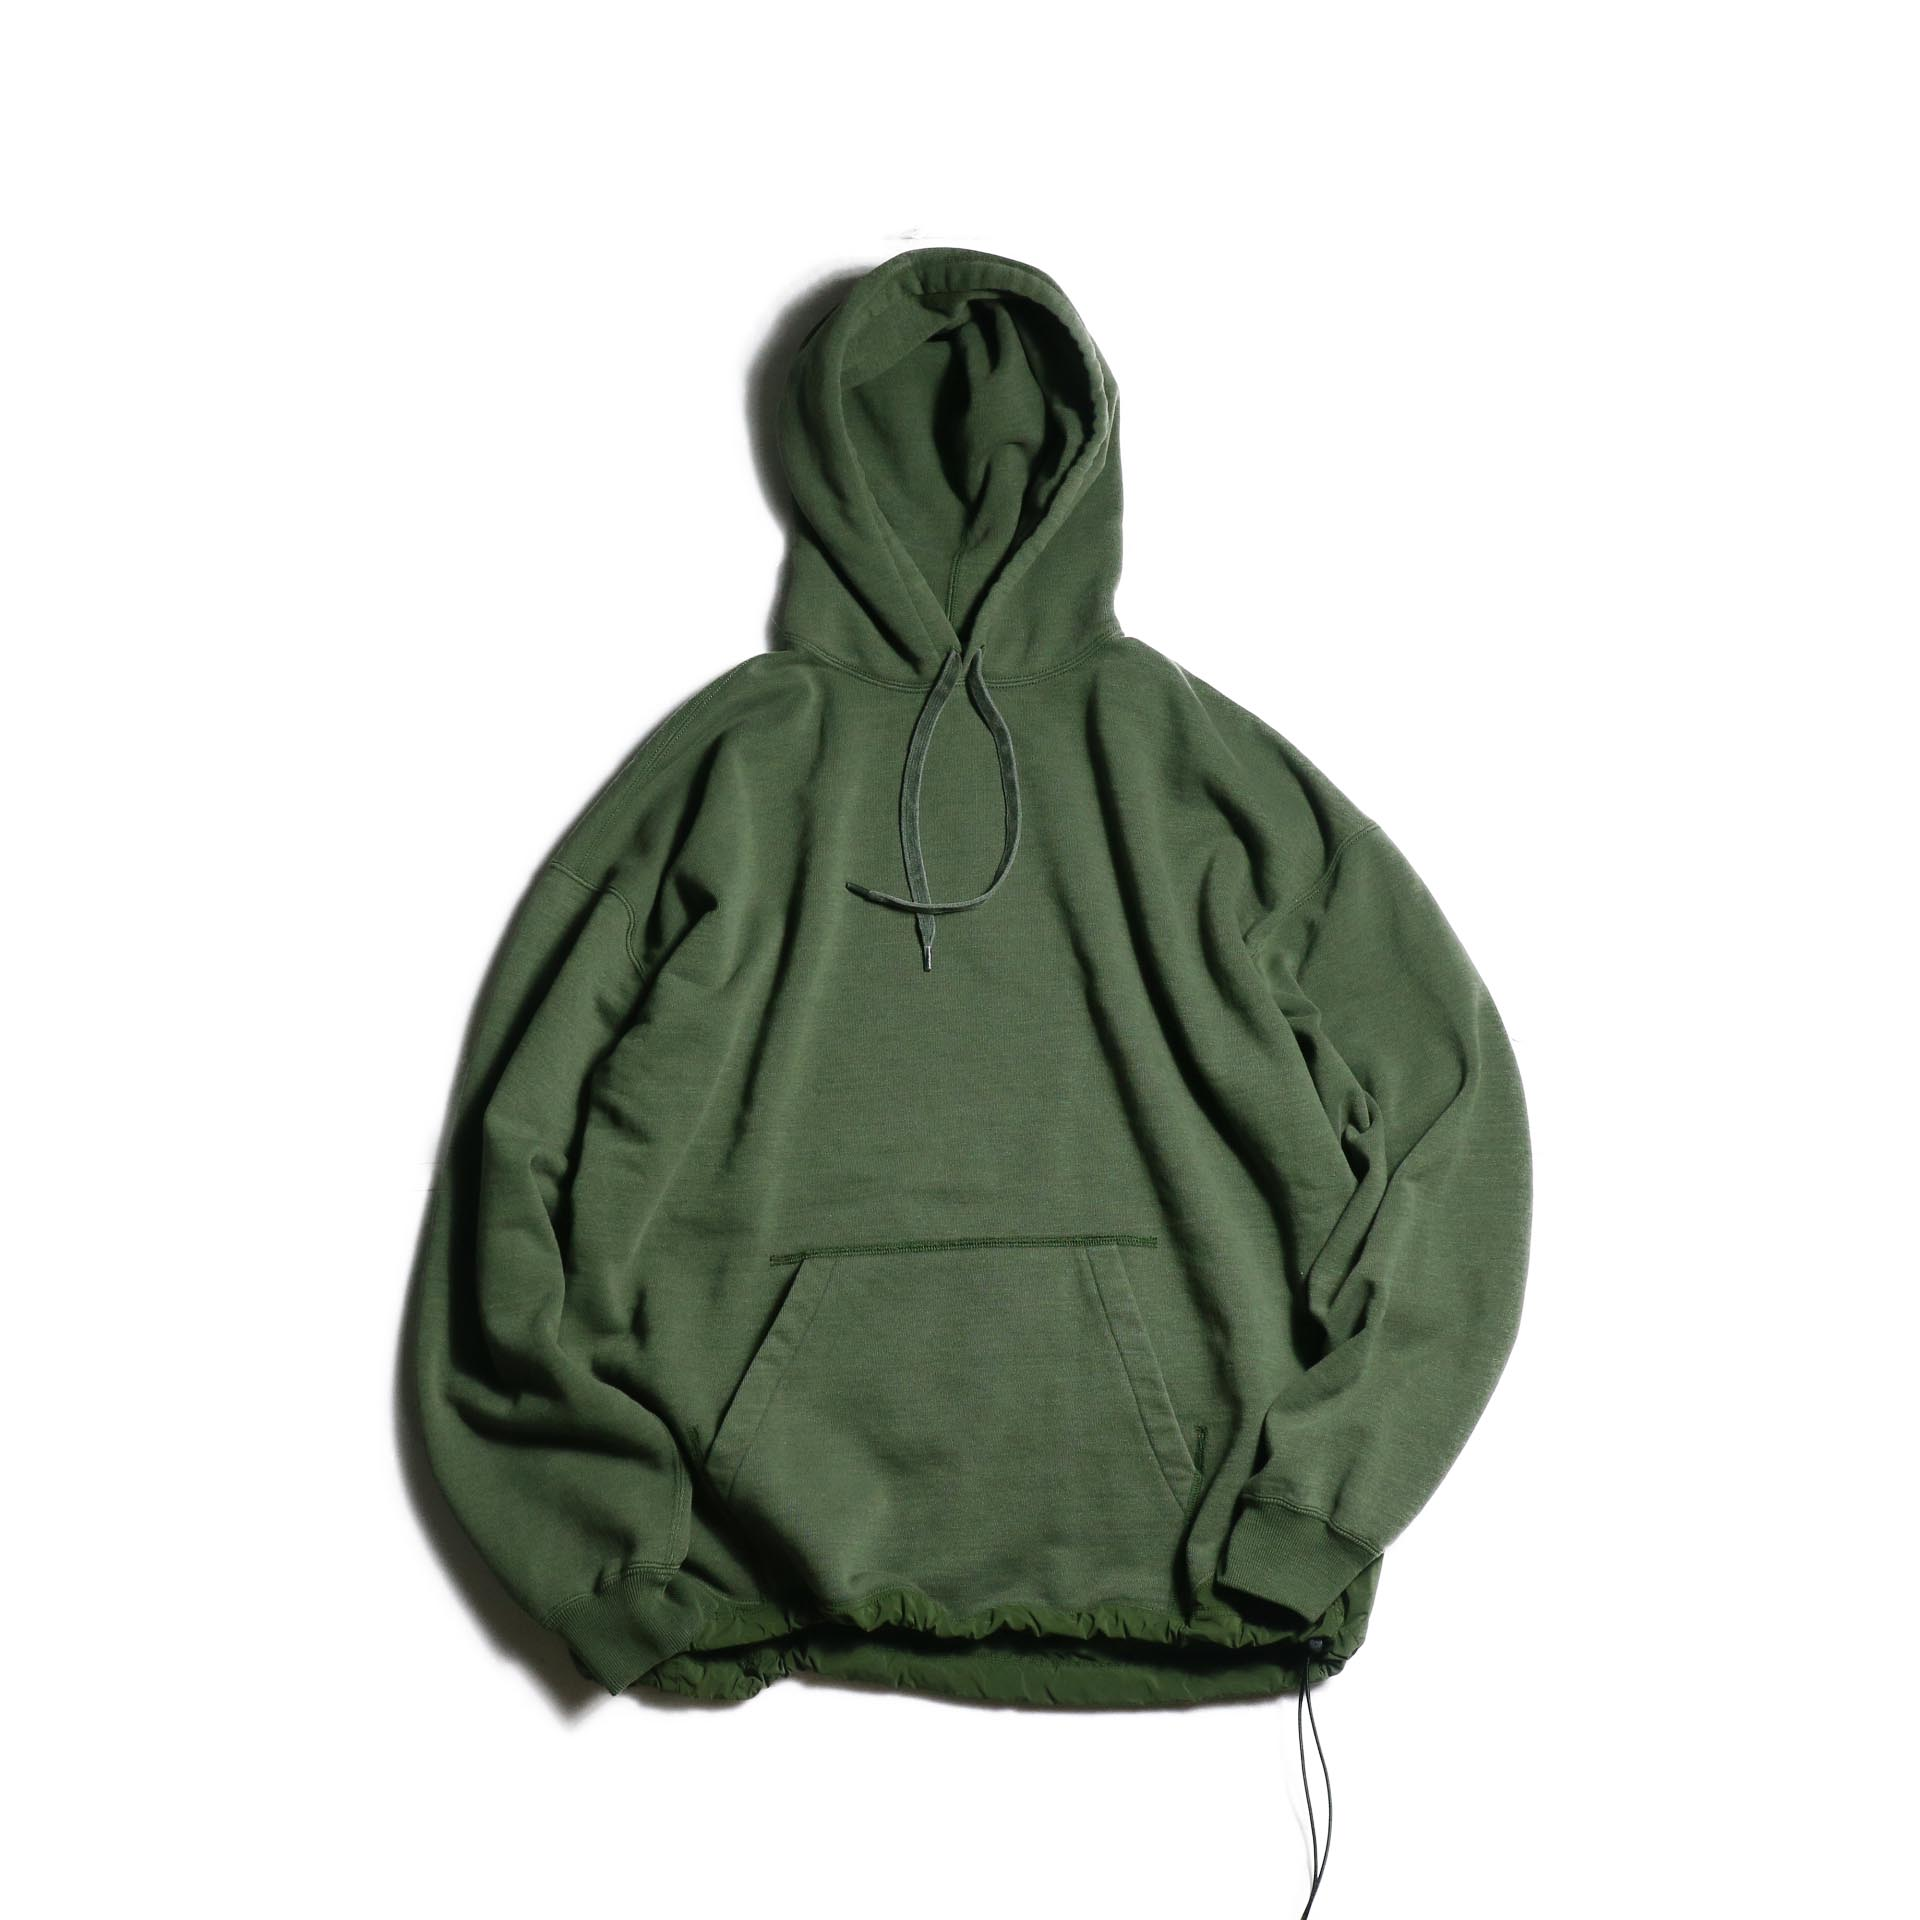 REMI RELIEF × BRIEFING / T/C裏起毛プルパーカ (Khaki)